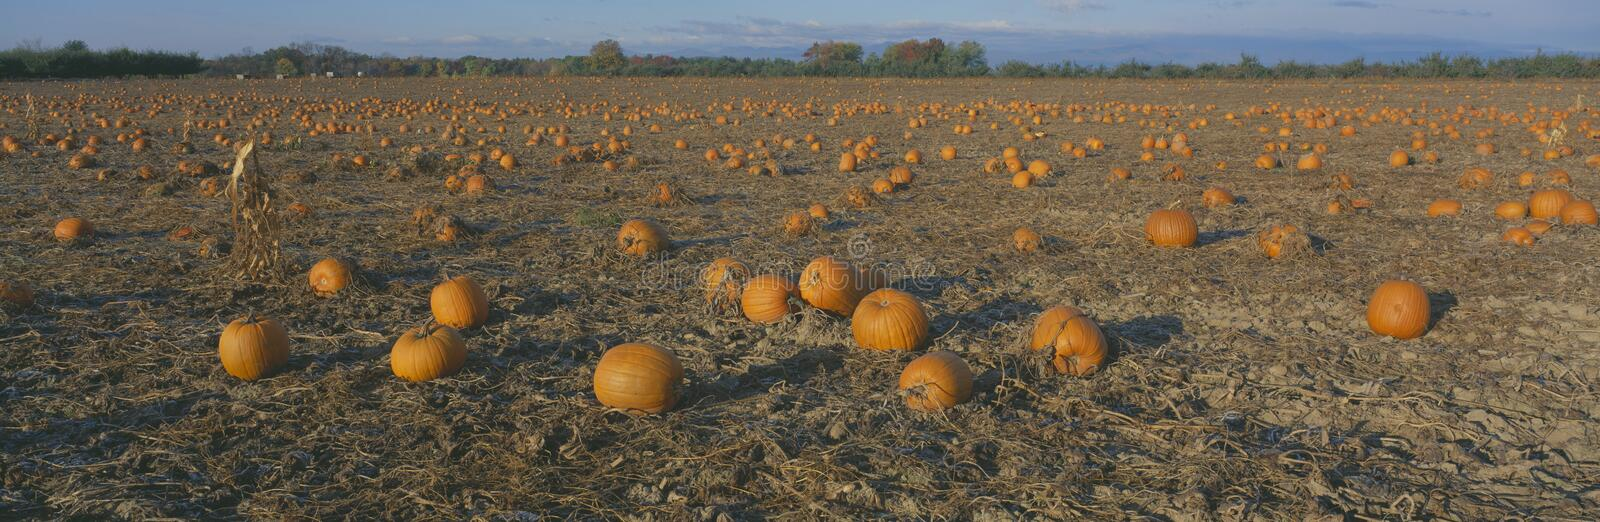 Download Pumpkin Patch stock photo. Image of growth, exterior - 23171186